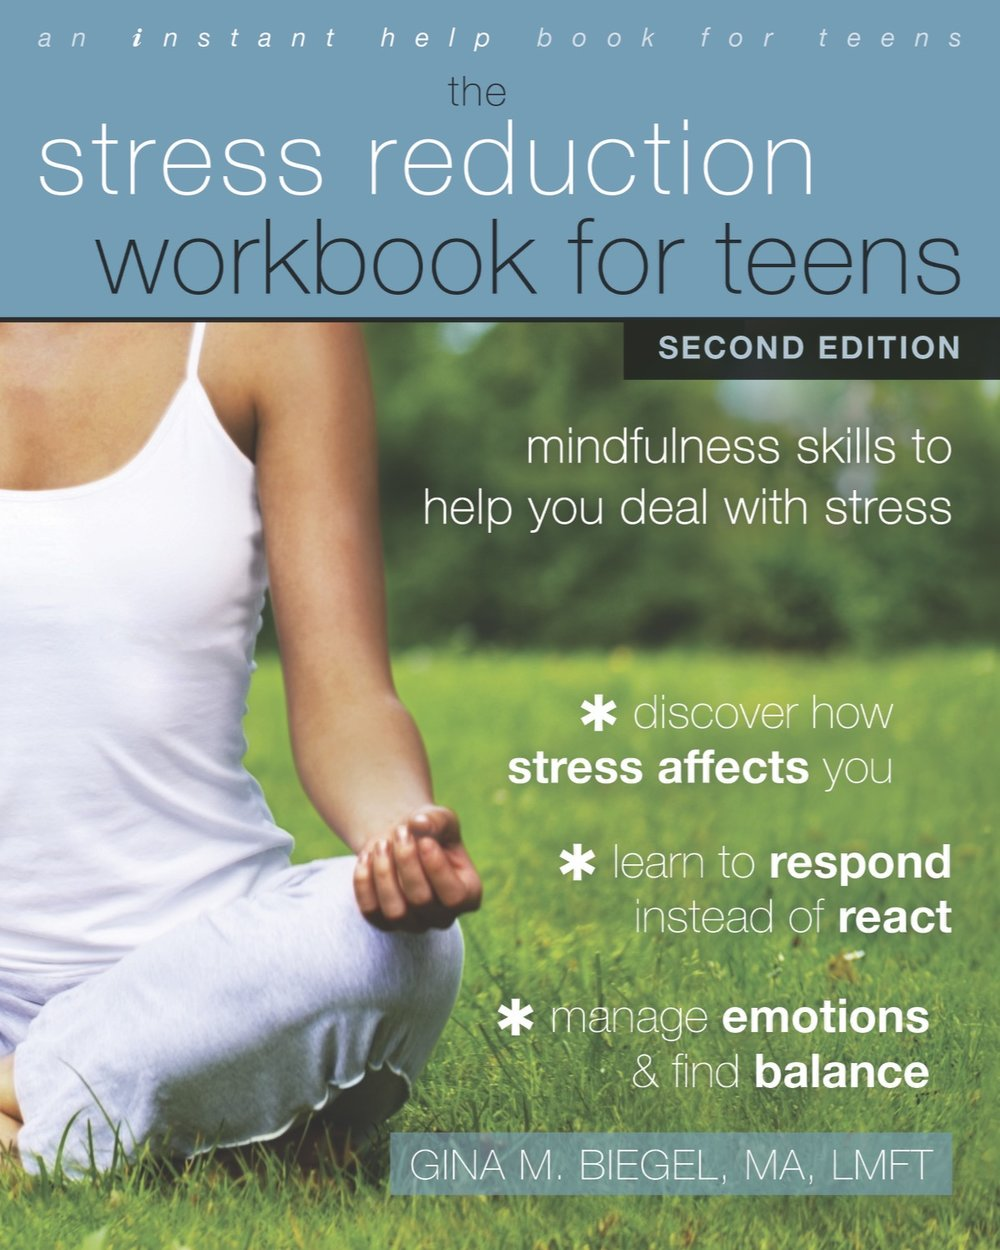 stress_reduction_workbook_for_teens.jpg